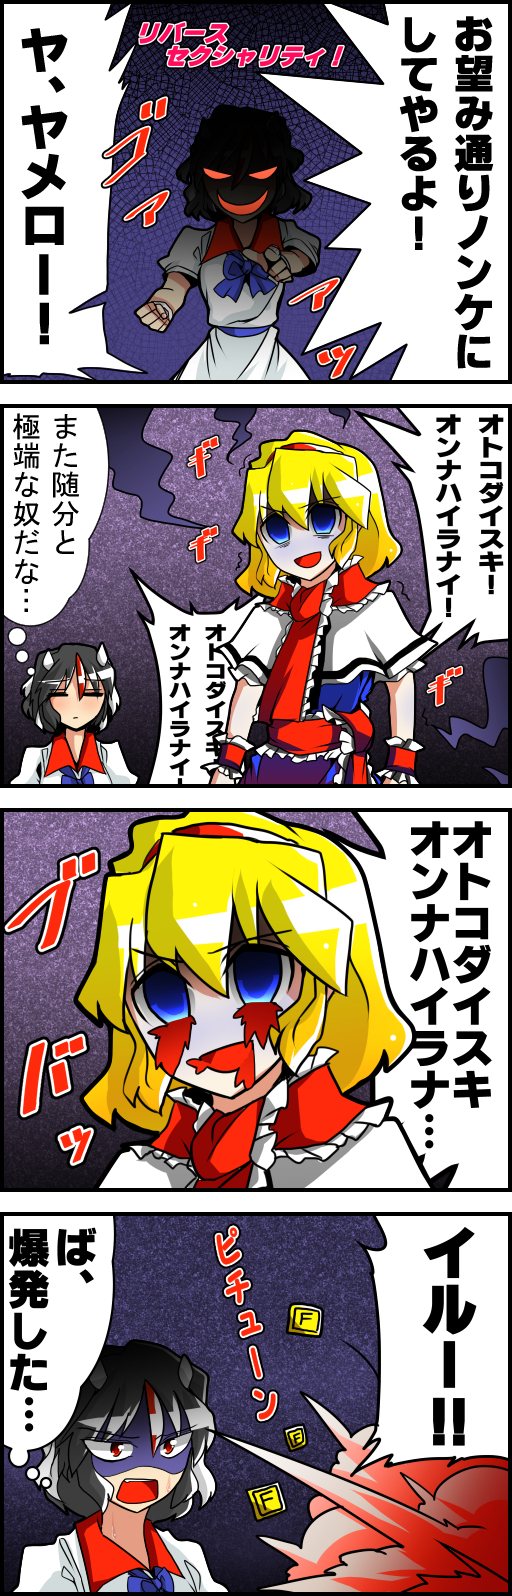 4koma alice_margatroid black_hair blonde_hair blood blood_from_mouth bloody_tears blue_eyes brainwashing comic evil_grin evil_smile explosion gameplay_mechanics grin highres horns kijin_seija multicolored_hair open_mouth pale_face red_eyes sei_(kaien_kien) shaded_face short_hair smile streaked_hair sweat touhou translation_request